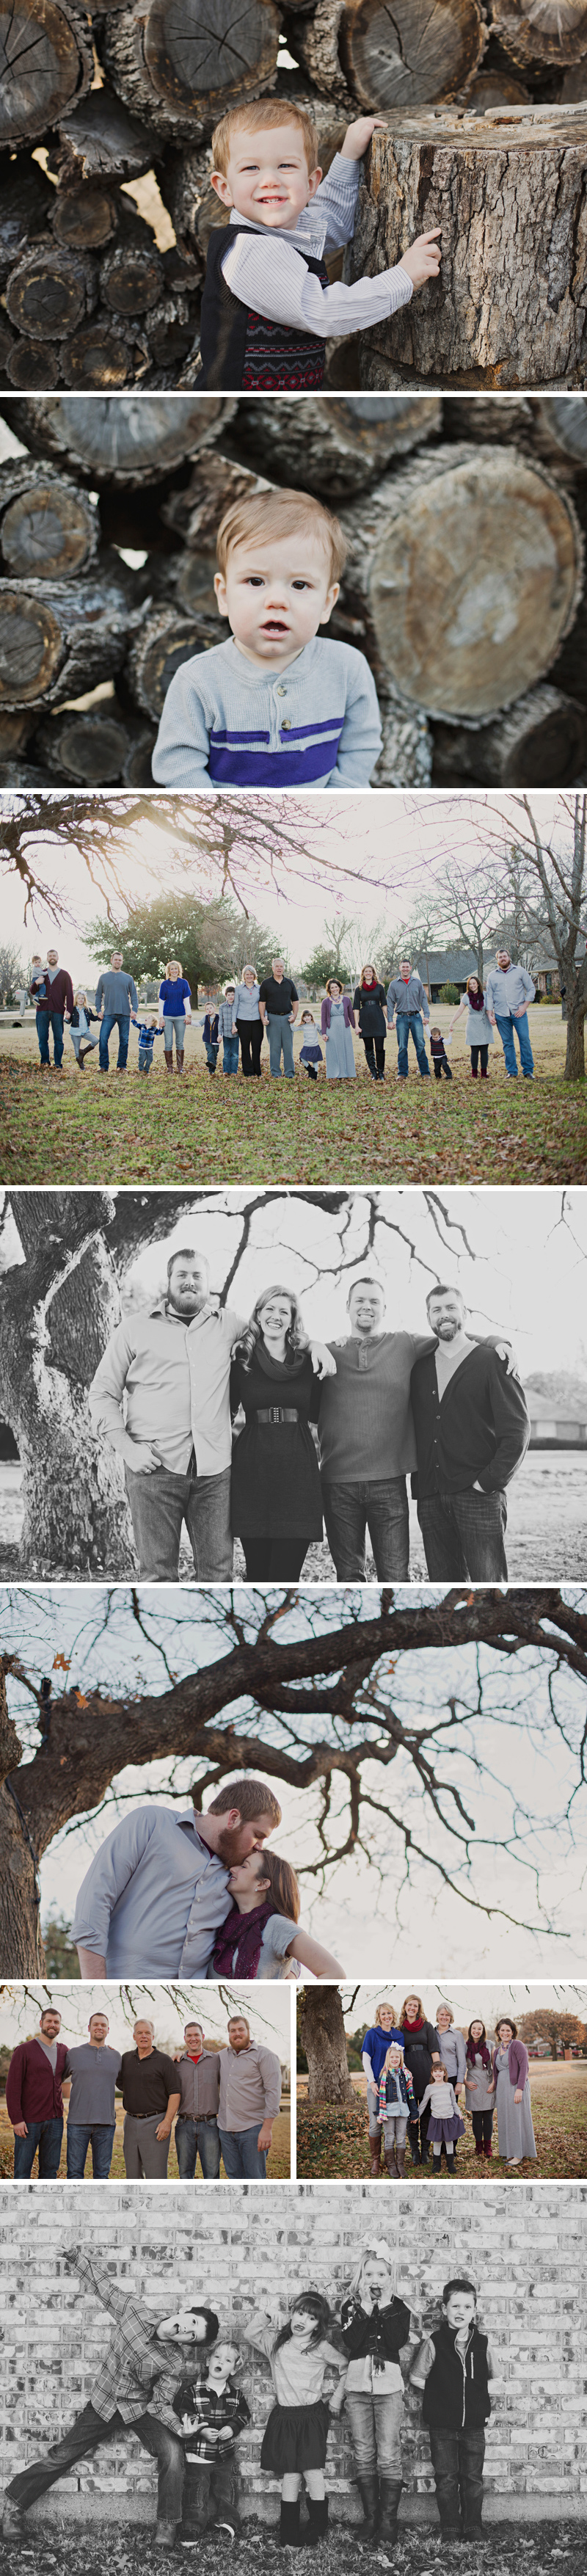 Dallas-Family-Photographerc006